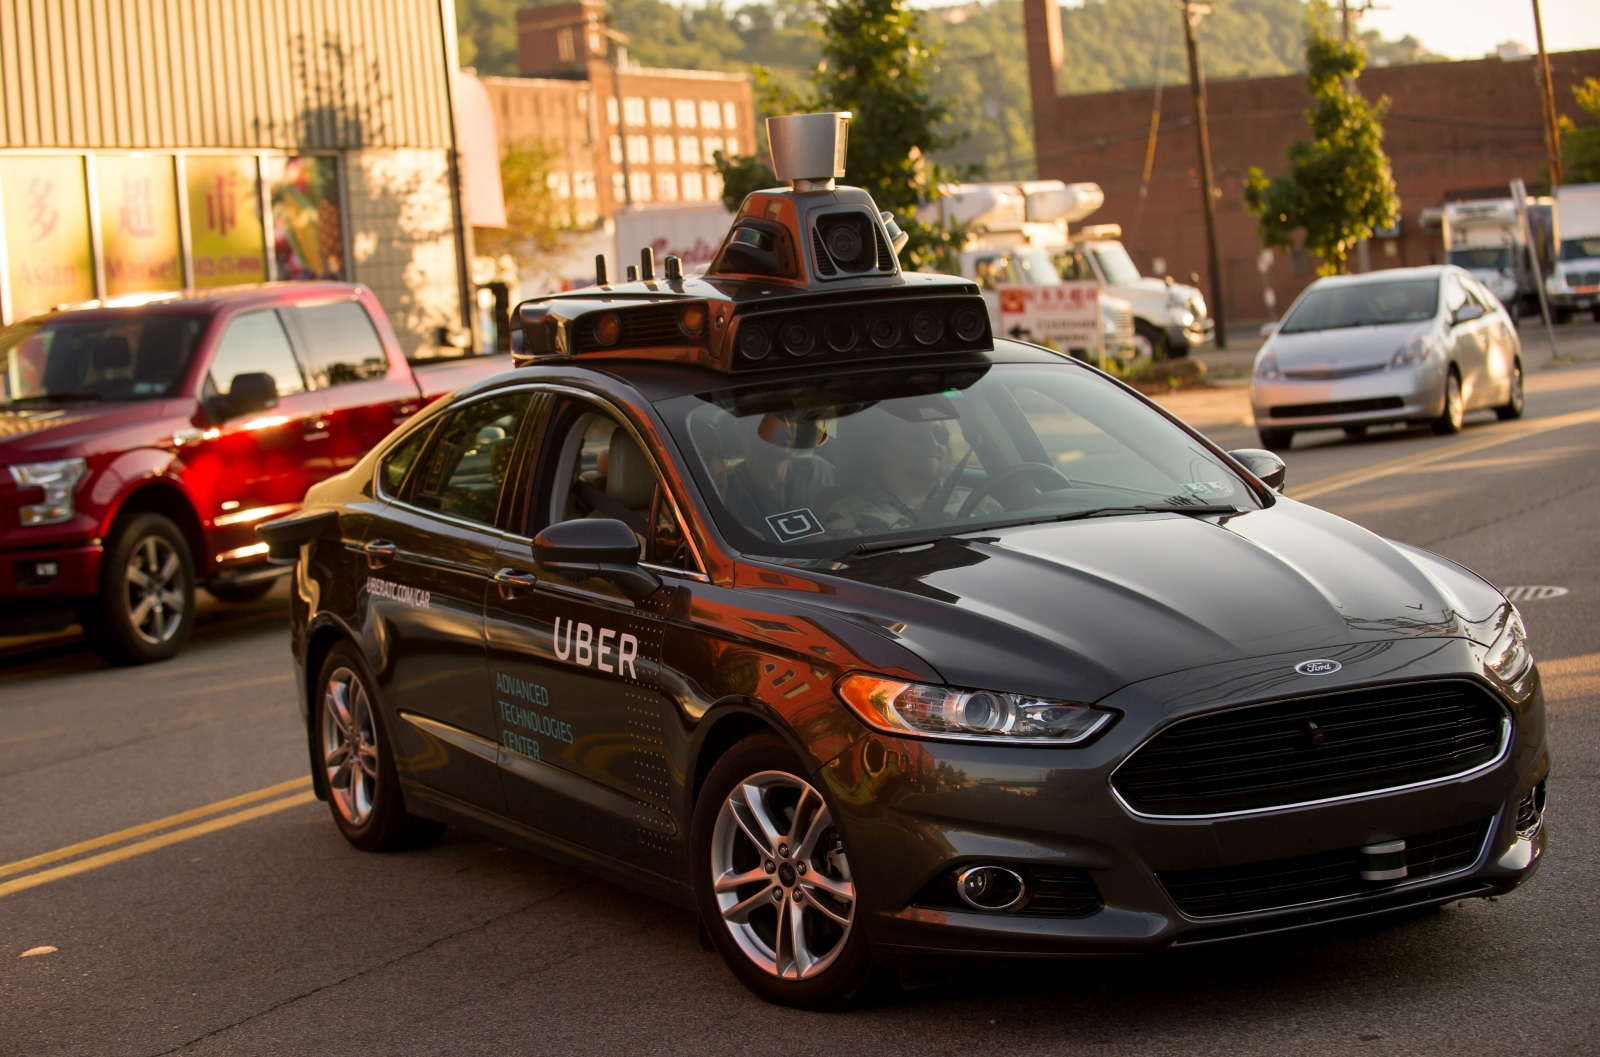 Uber admits self-driving car 'problem' even as firm sees over $800m loss in Q3